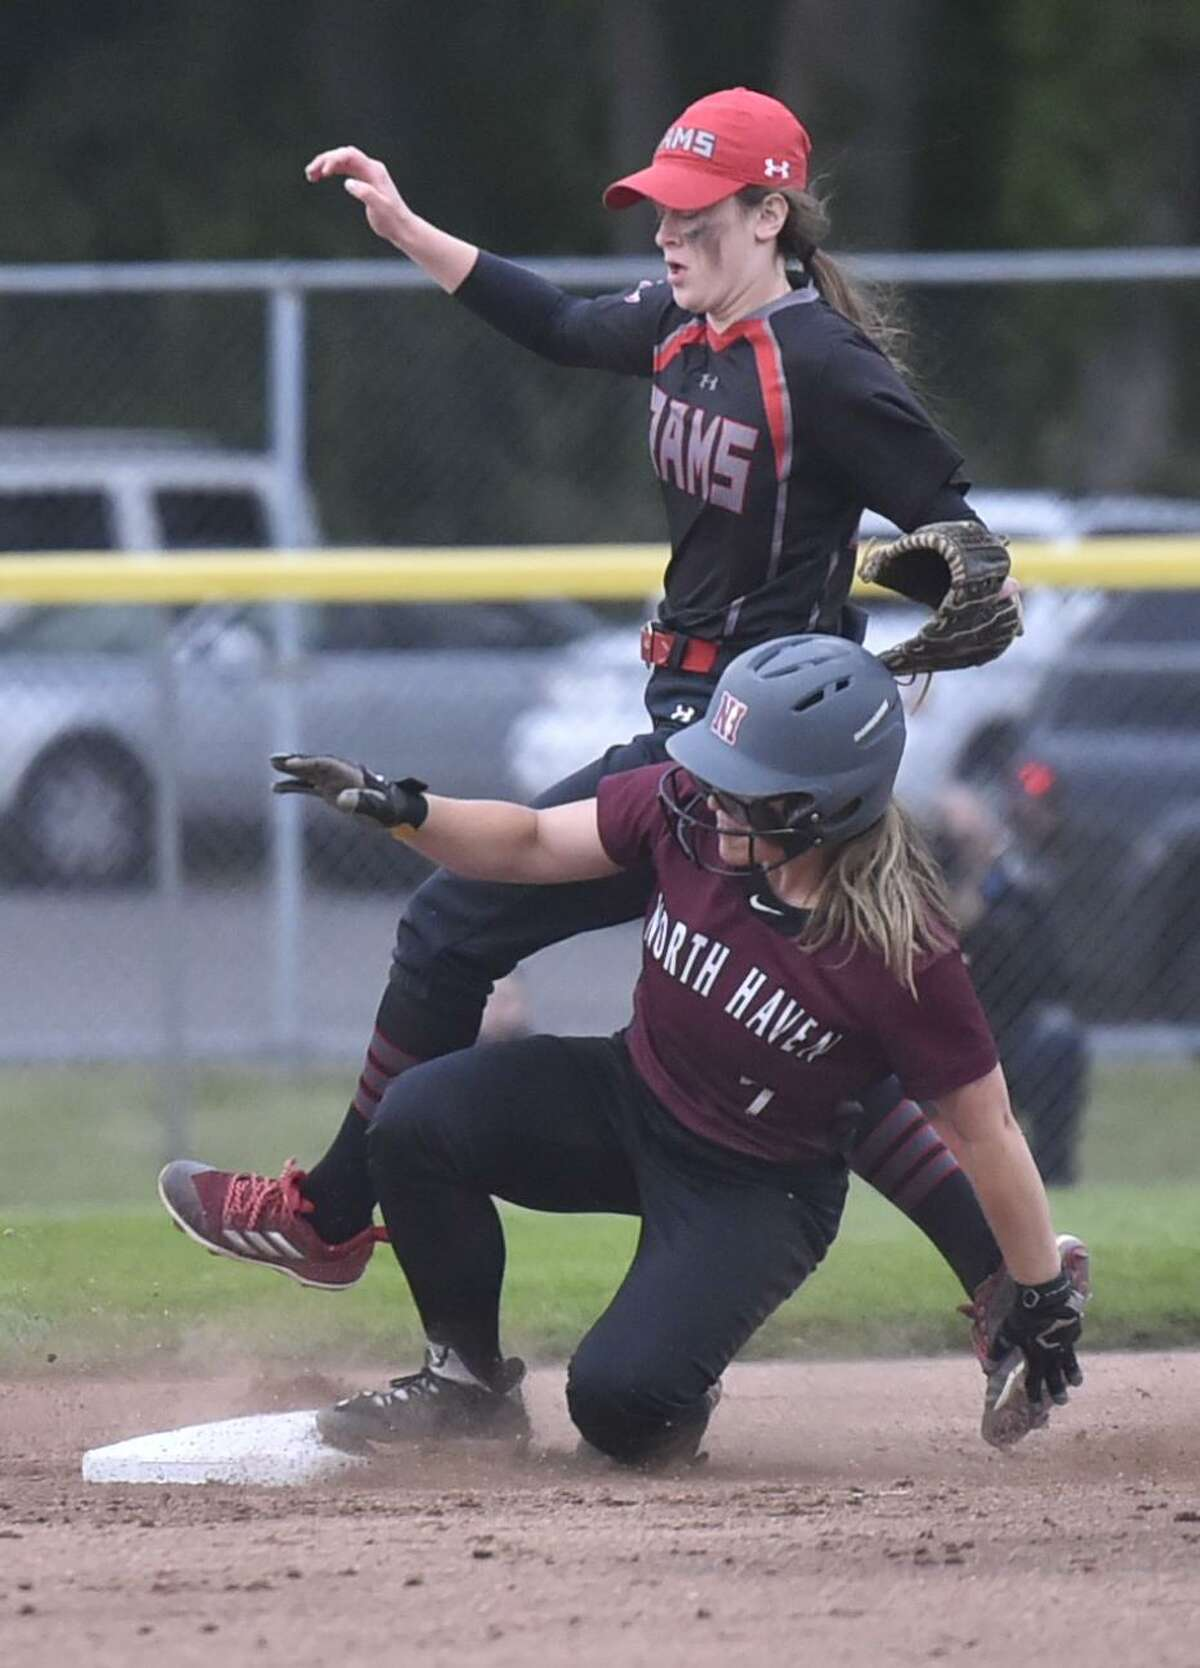 West Haven, Connecticut - Friday, May 24, 2019: North Haven H.S. vs. Cheshire H.S. during the SCC softball tournament championship game Friday evening at Biondi Field at West Haven H.S. Cheshire H.S. defeated North Haven H.S. 3-2.